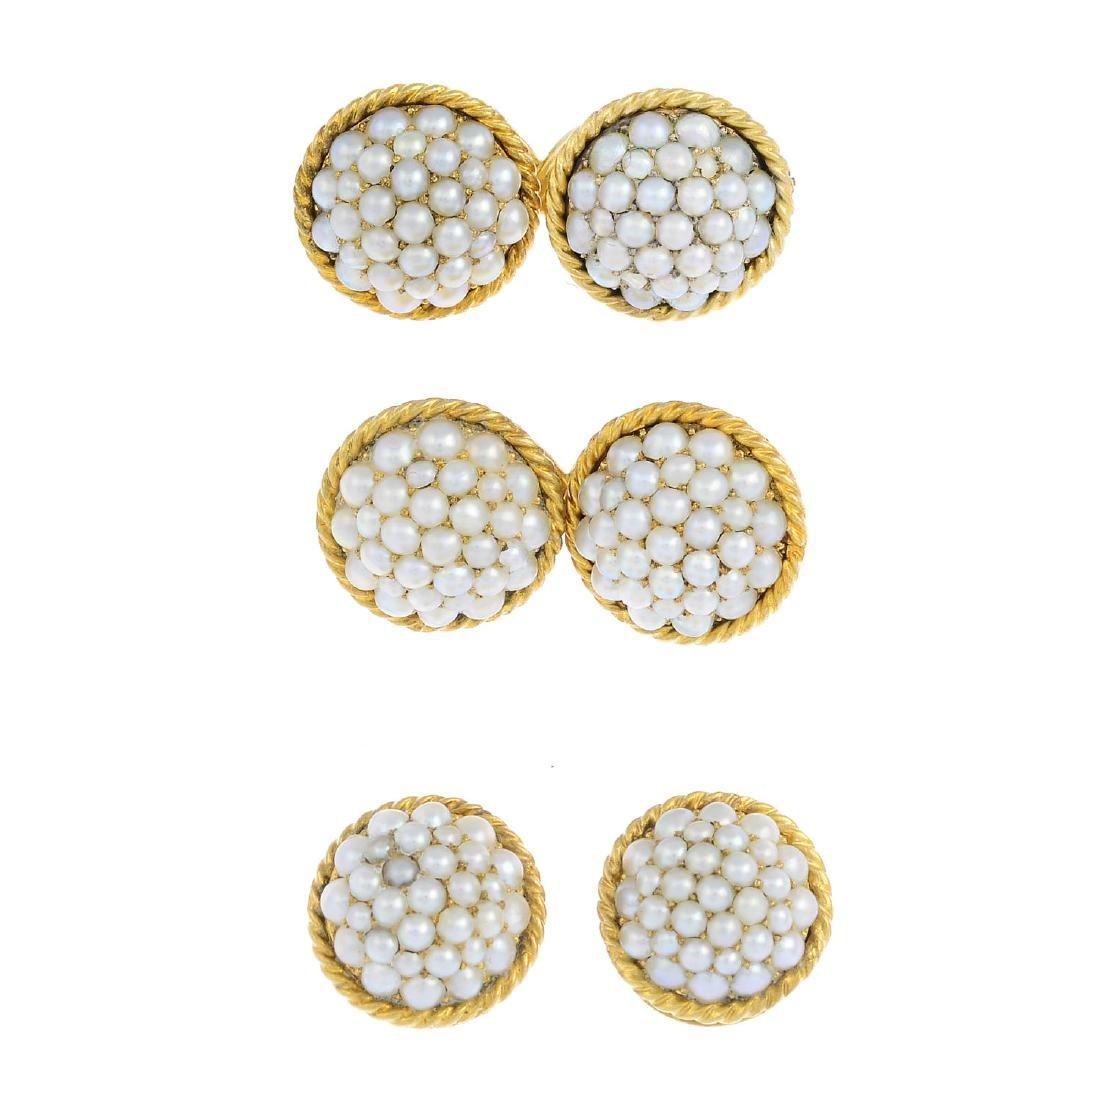 A gentlemen's seed pearl dress set. To include a pair